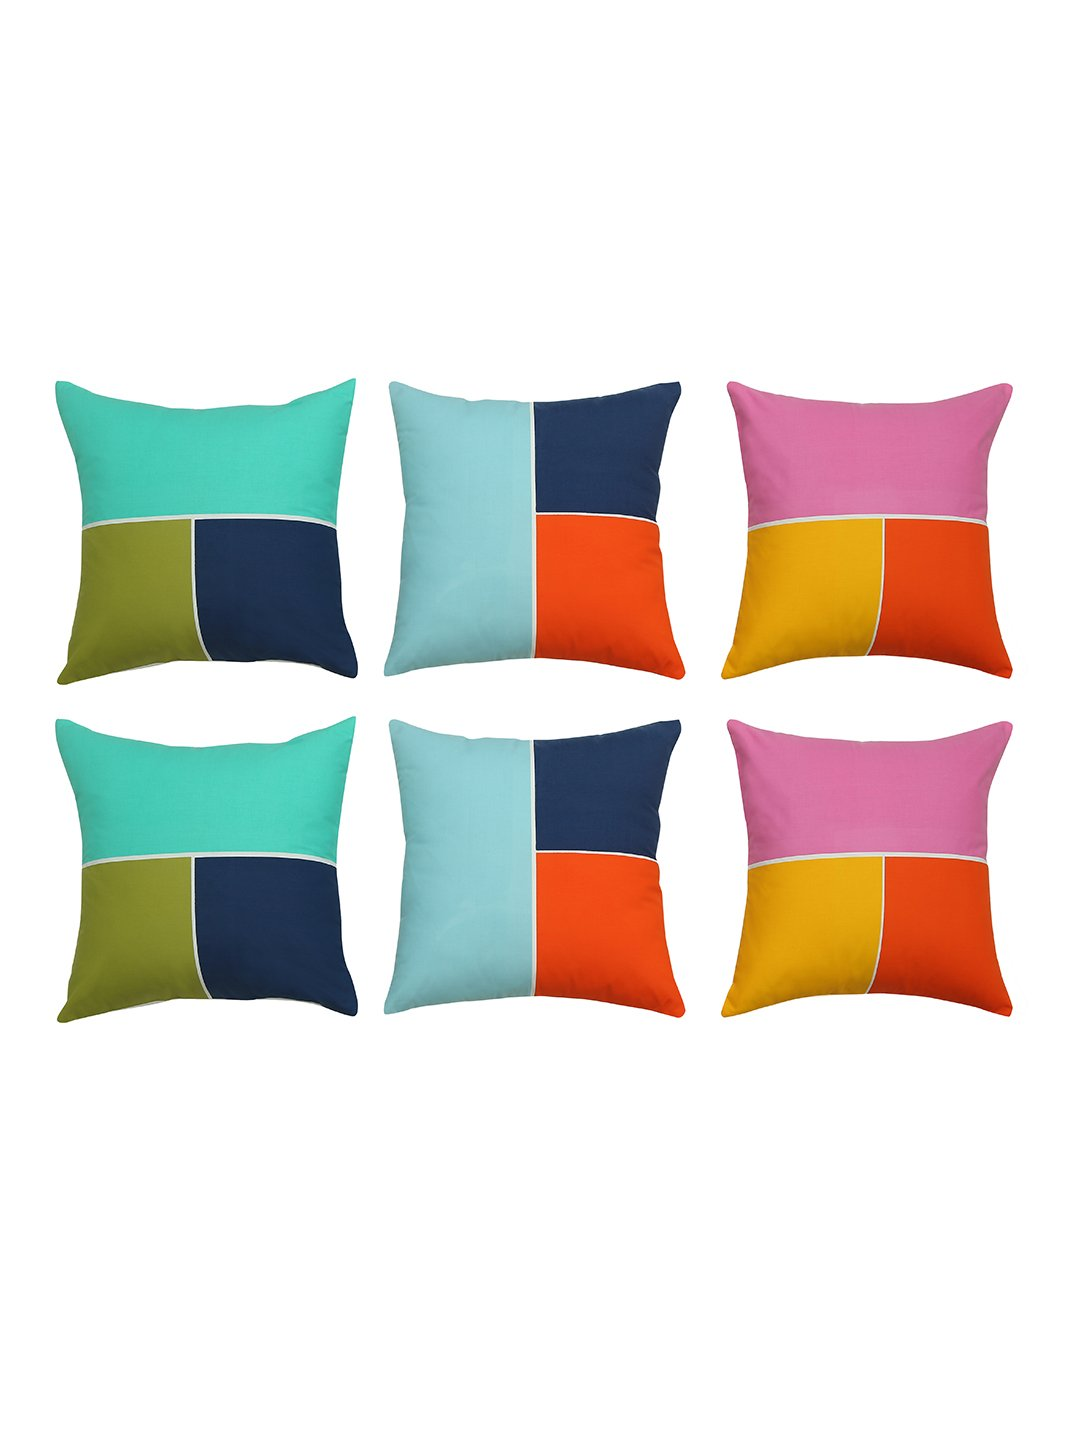 Handcrafted Abstract Geometry Cushion Covers (Set of 6)